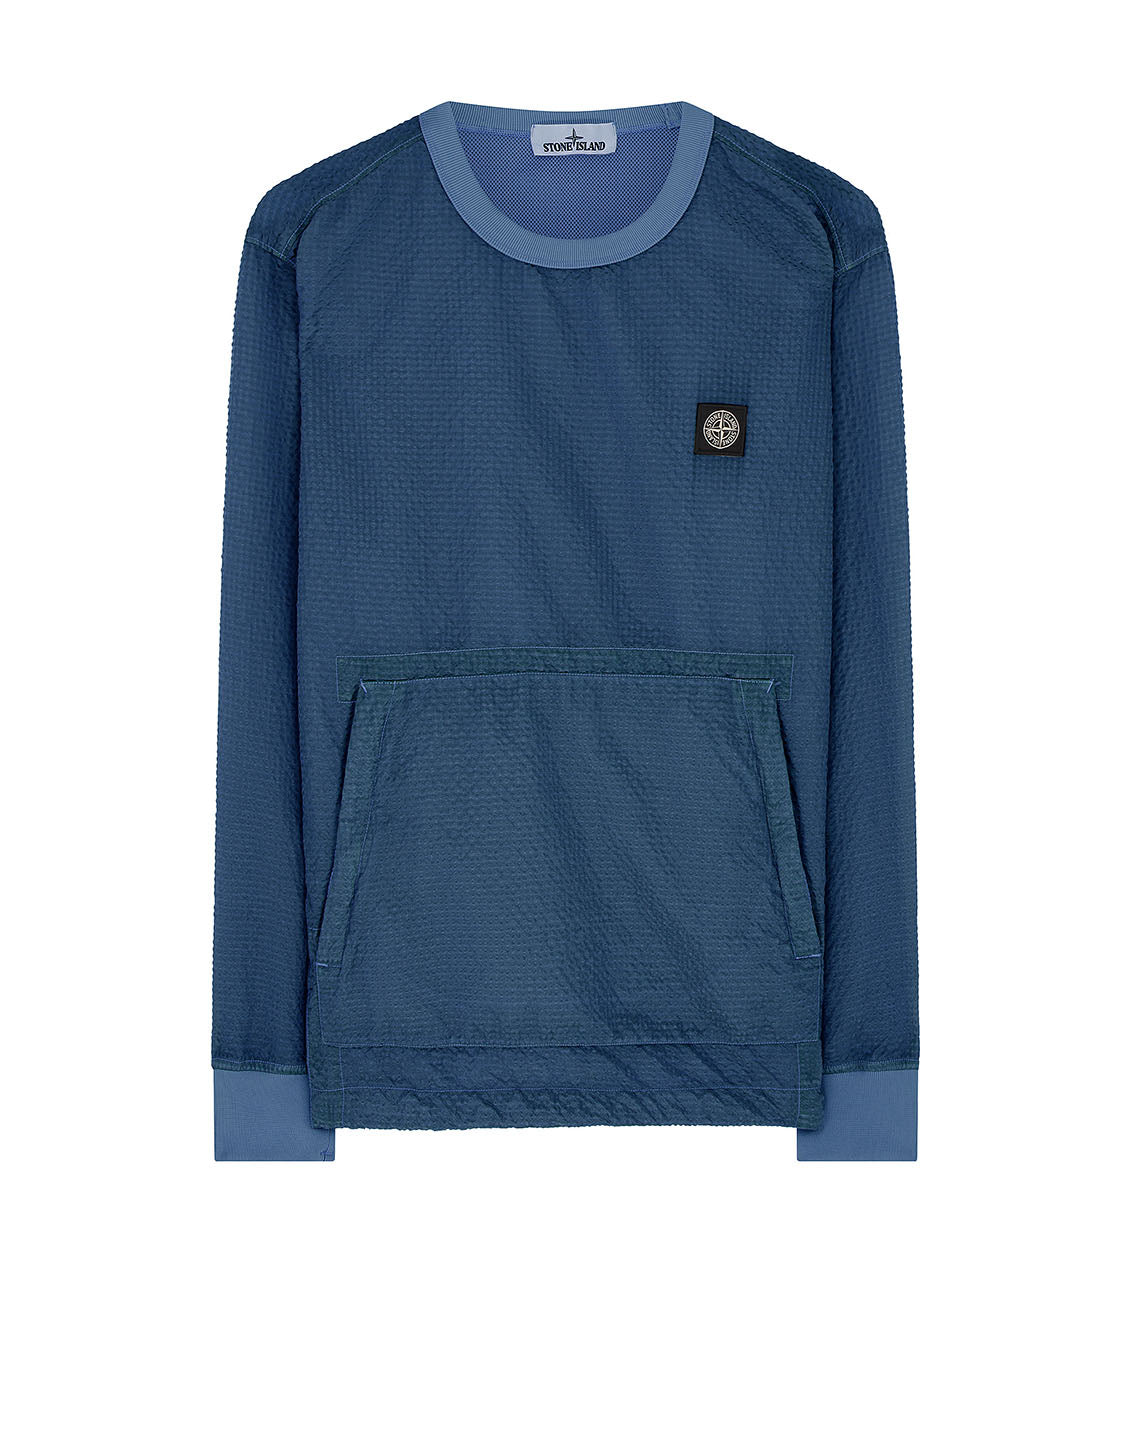 62434 POLY-COLOUR FRAME-TC: Crewneck sweatshirt in Periwinkle